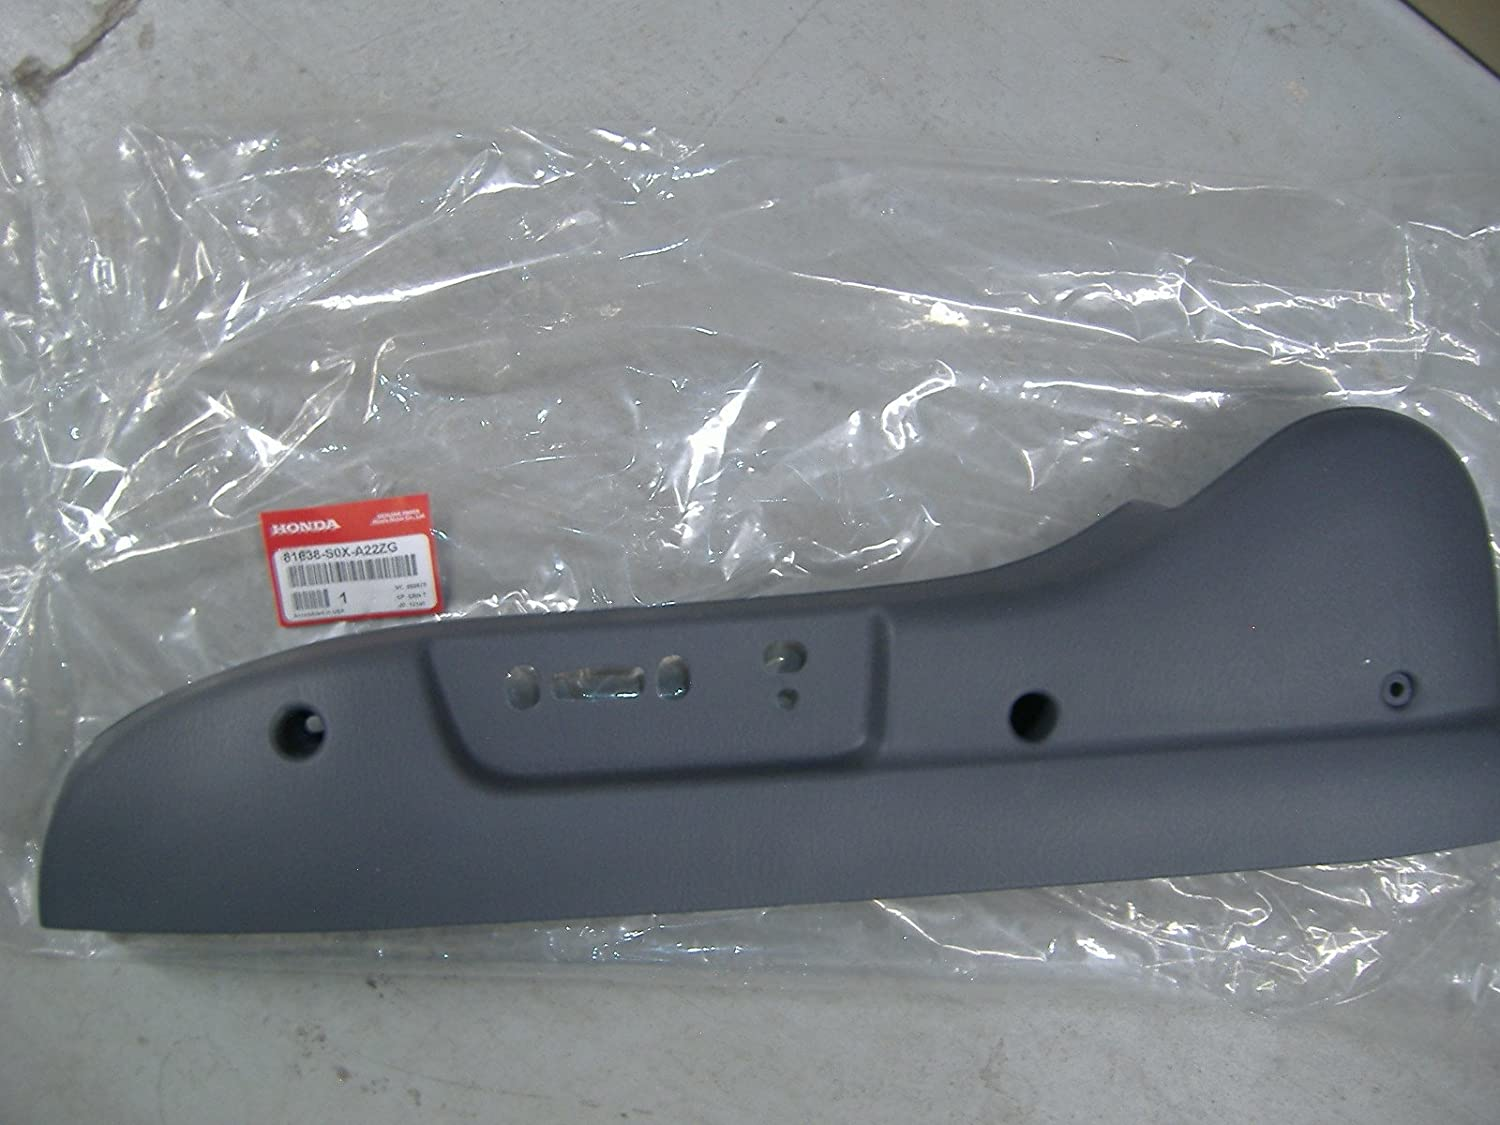 Right Front Honda Genuine 81131-SJC-A51ZB Seat Cushion Trim Cover